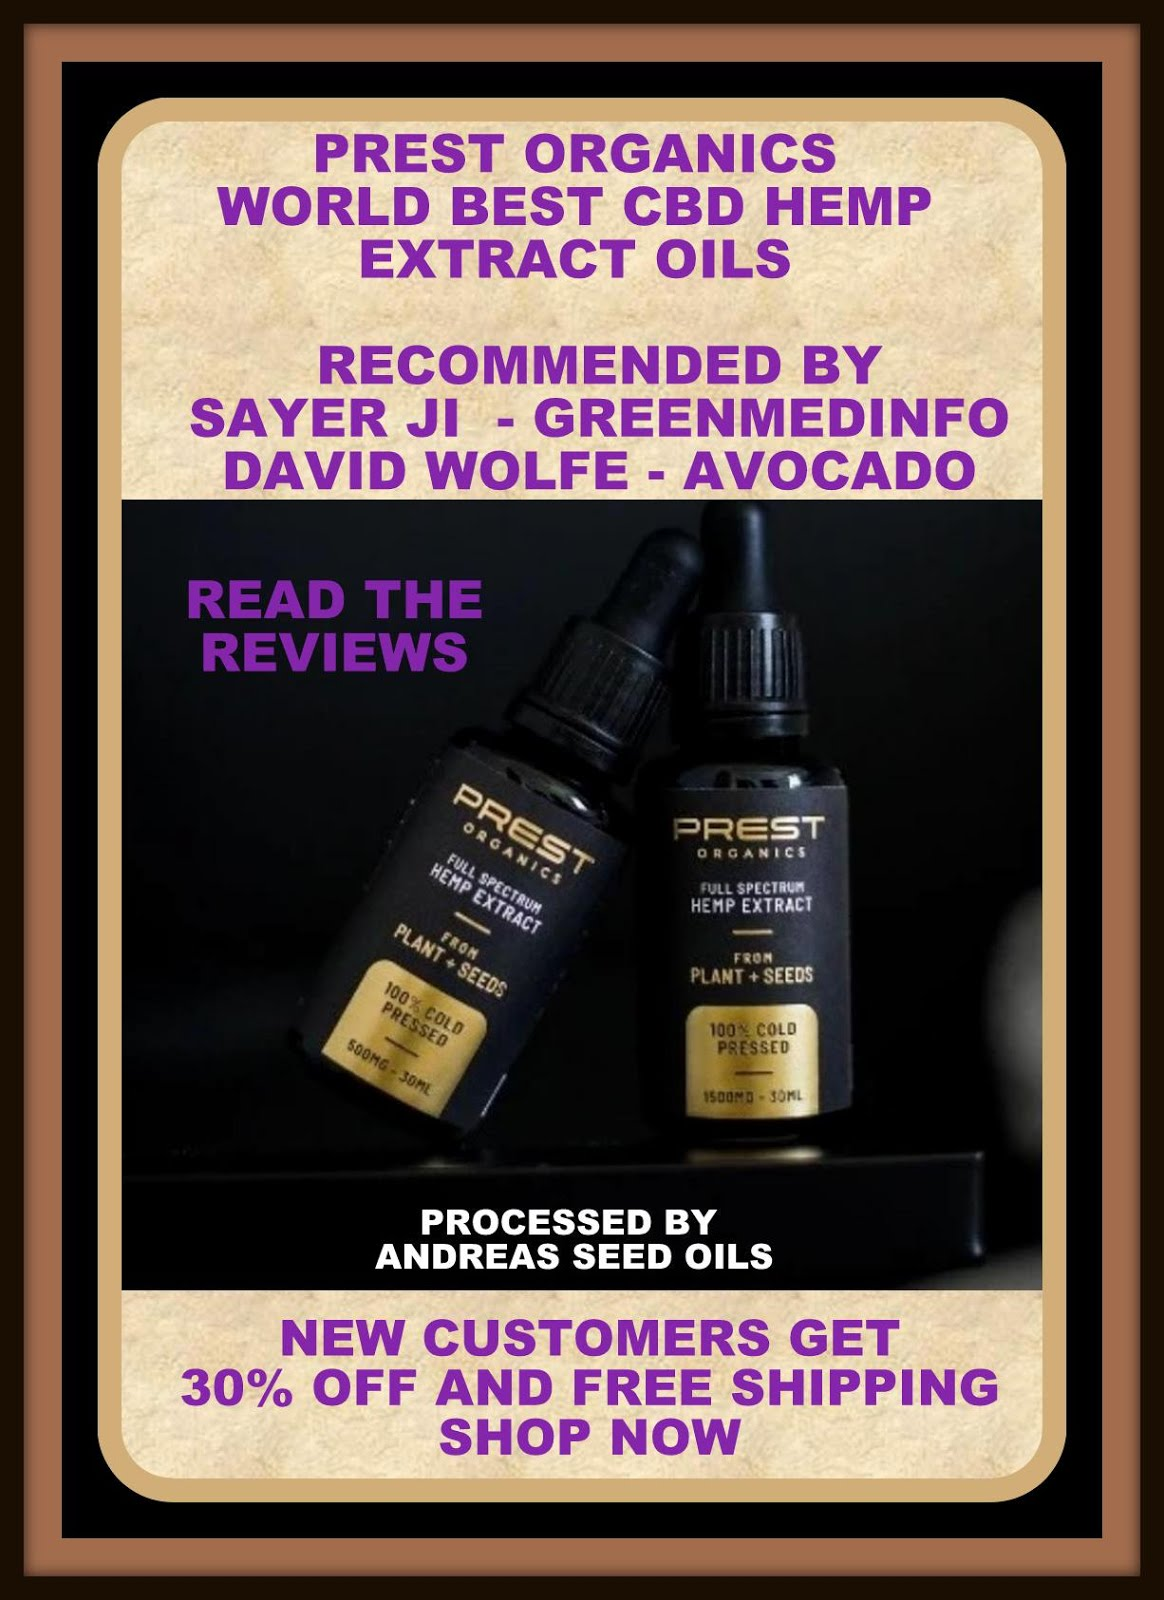 MY RECOMMENDATION FOR CBD OIL